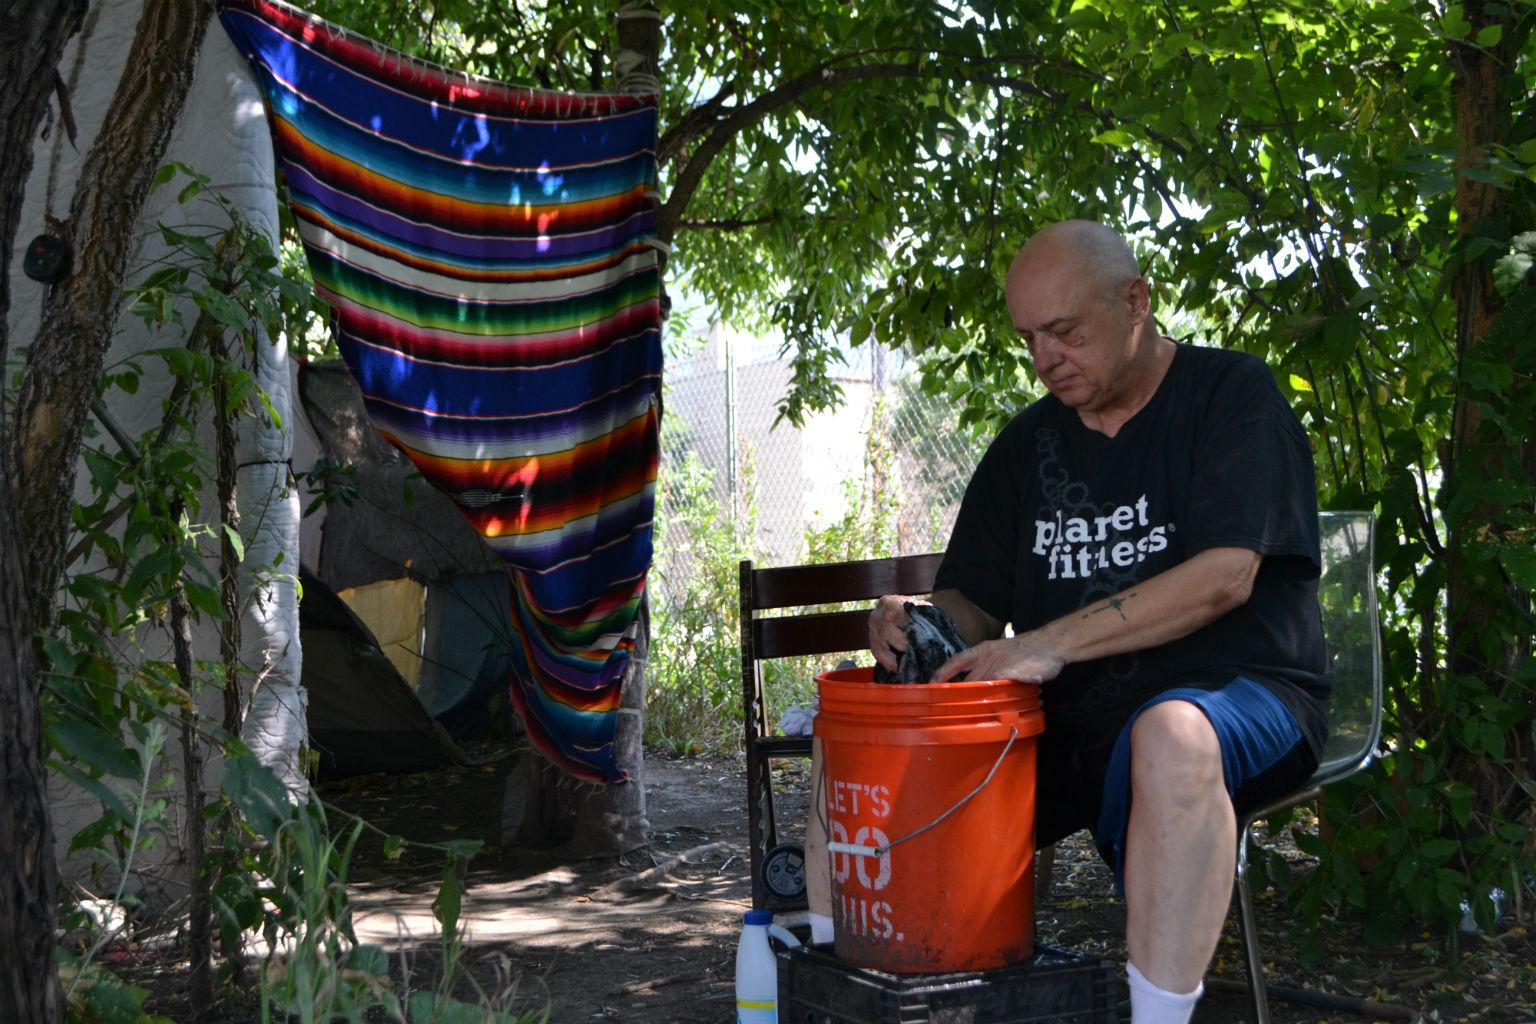 Don Gorobegko washes clothes Friday, Aug. 10, 2018, in a homeless encampment along DesPlaines Street. (Kristen Thometz / Chicago Tonight)